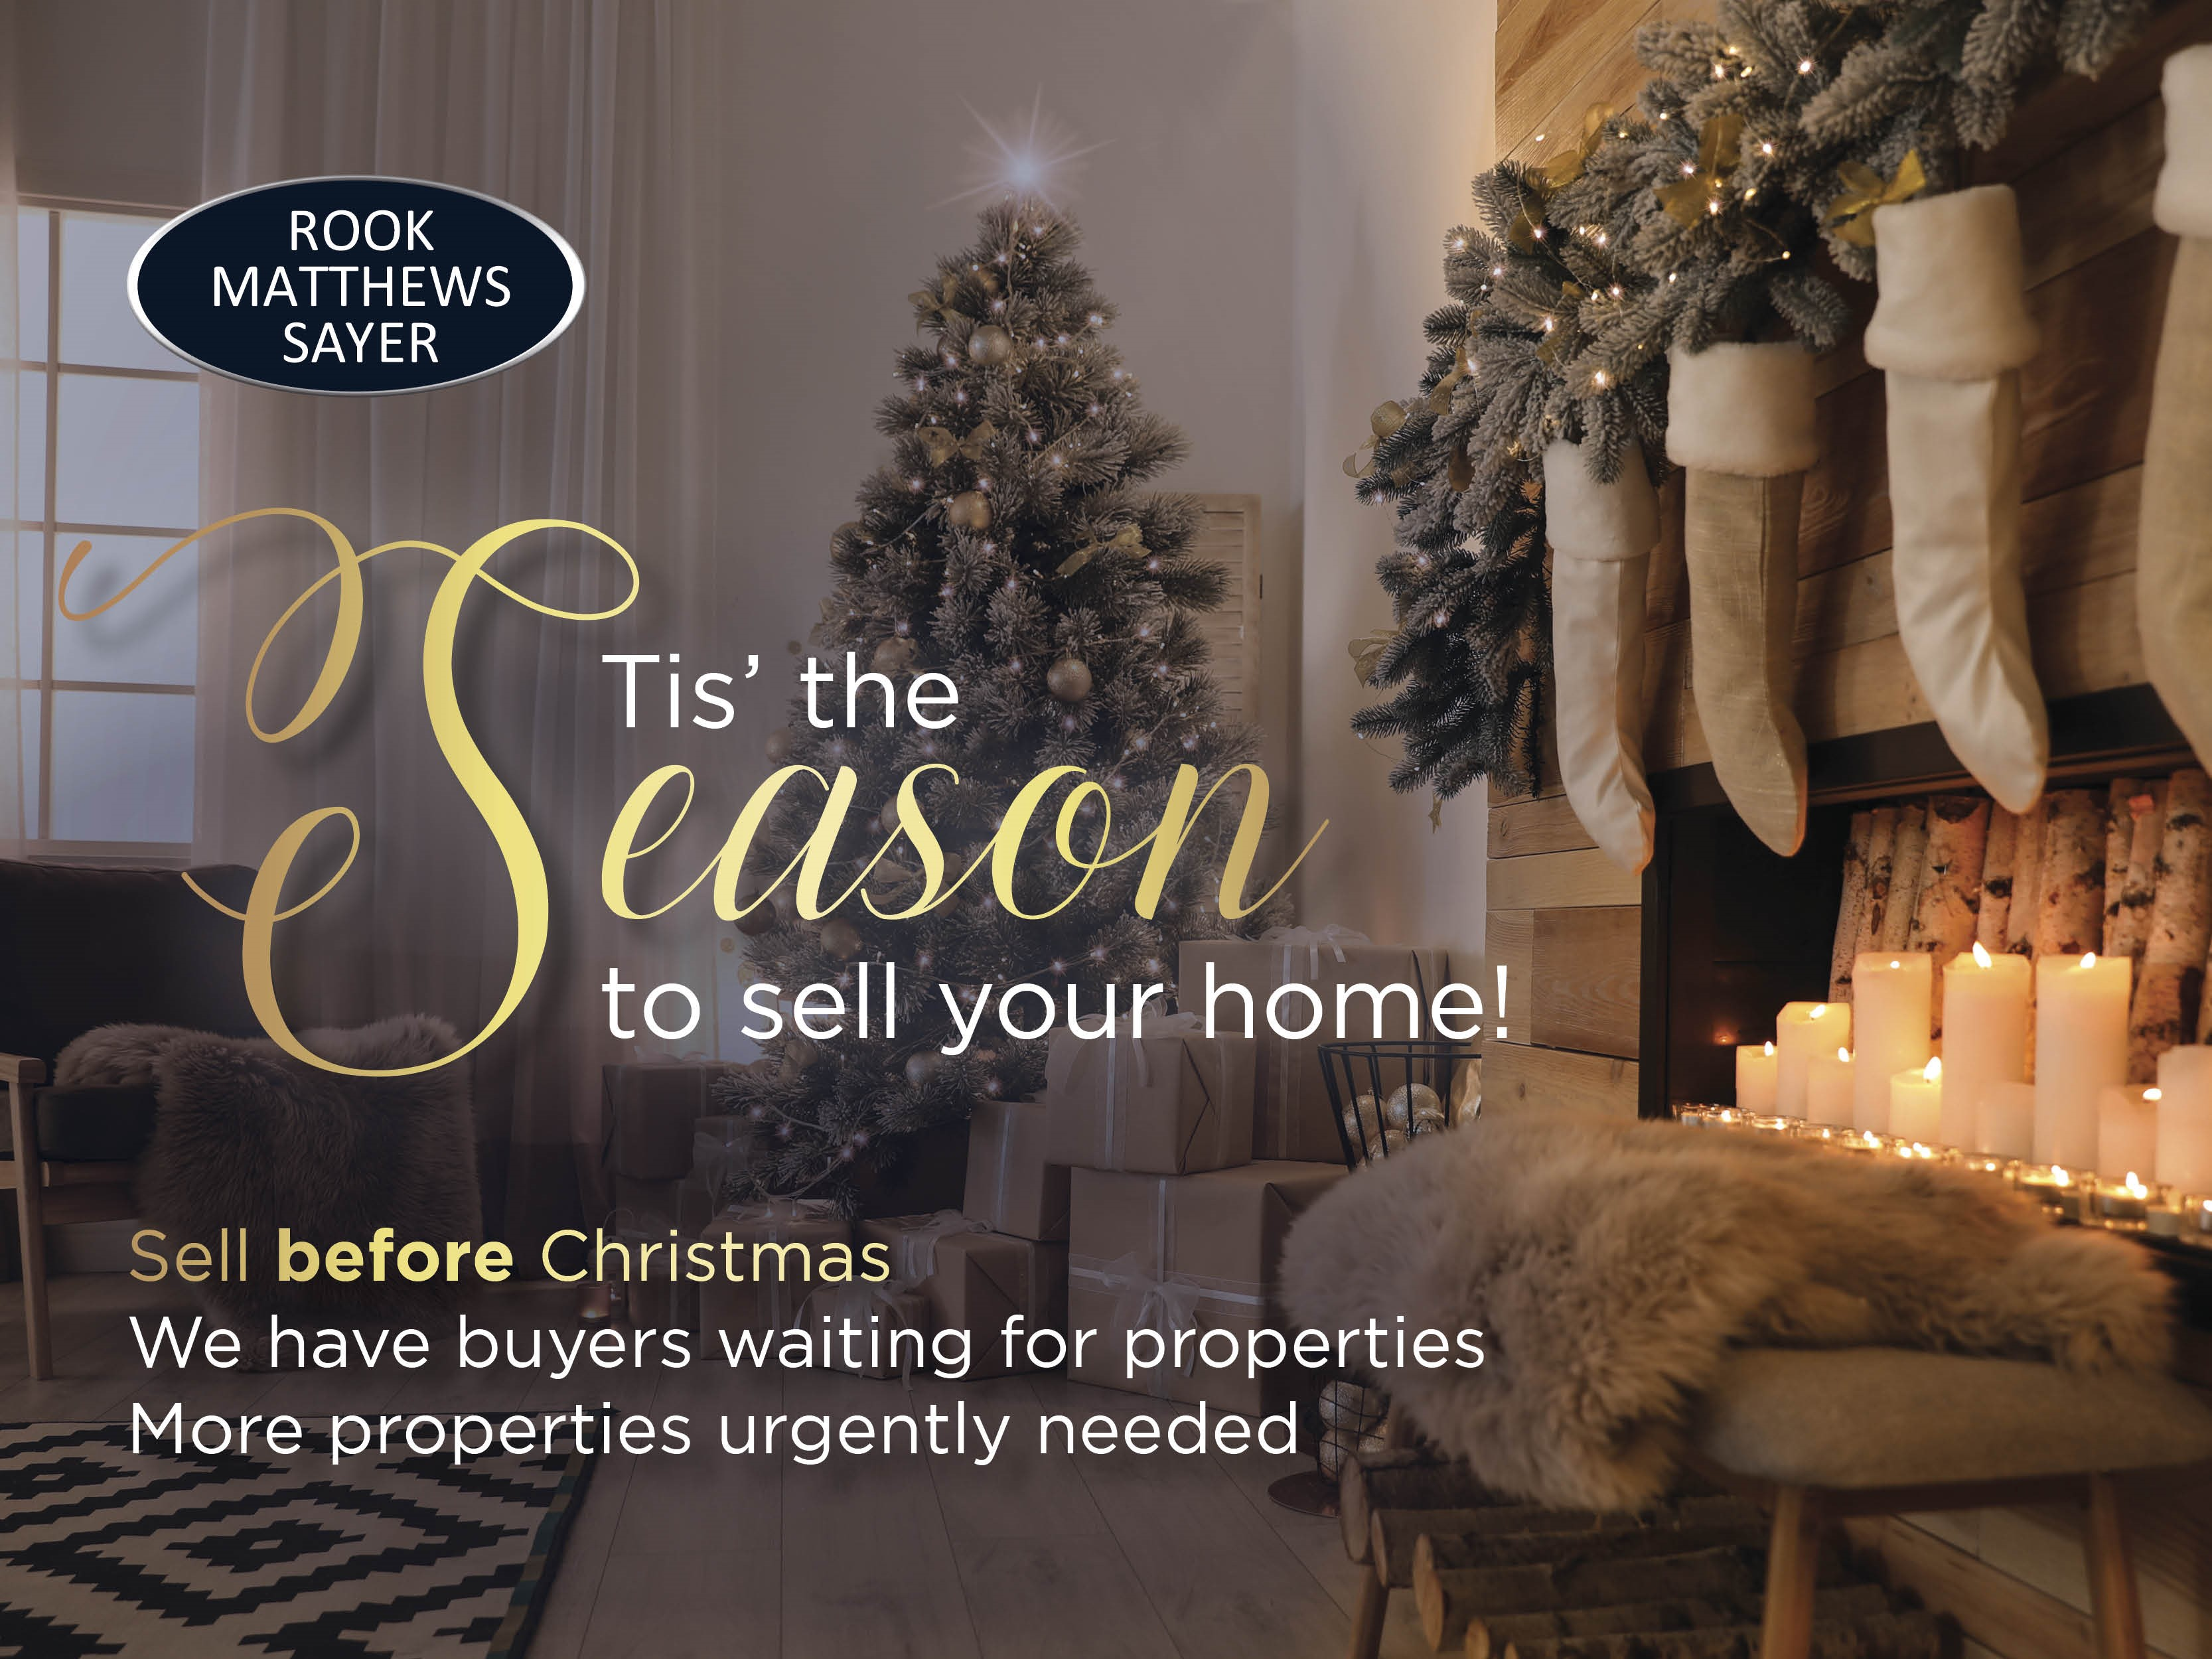 'Tis the season to sell your home!